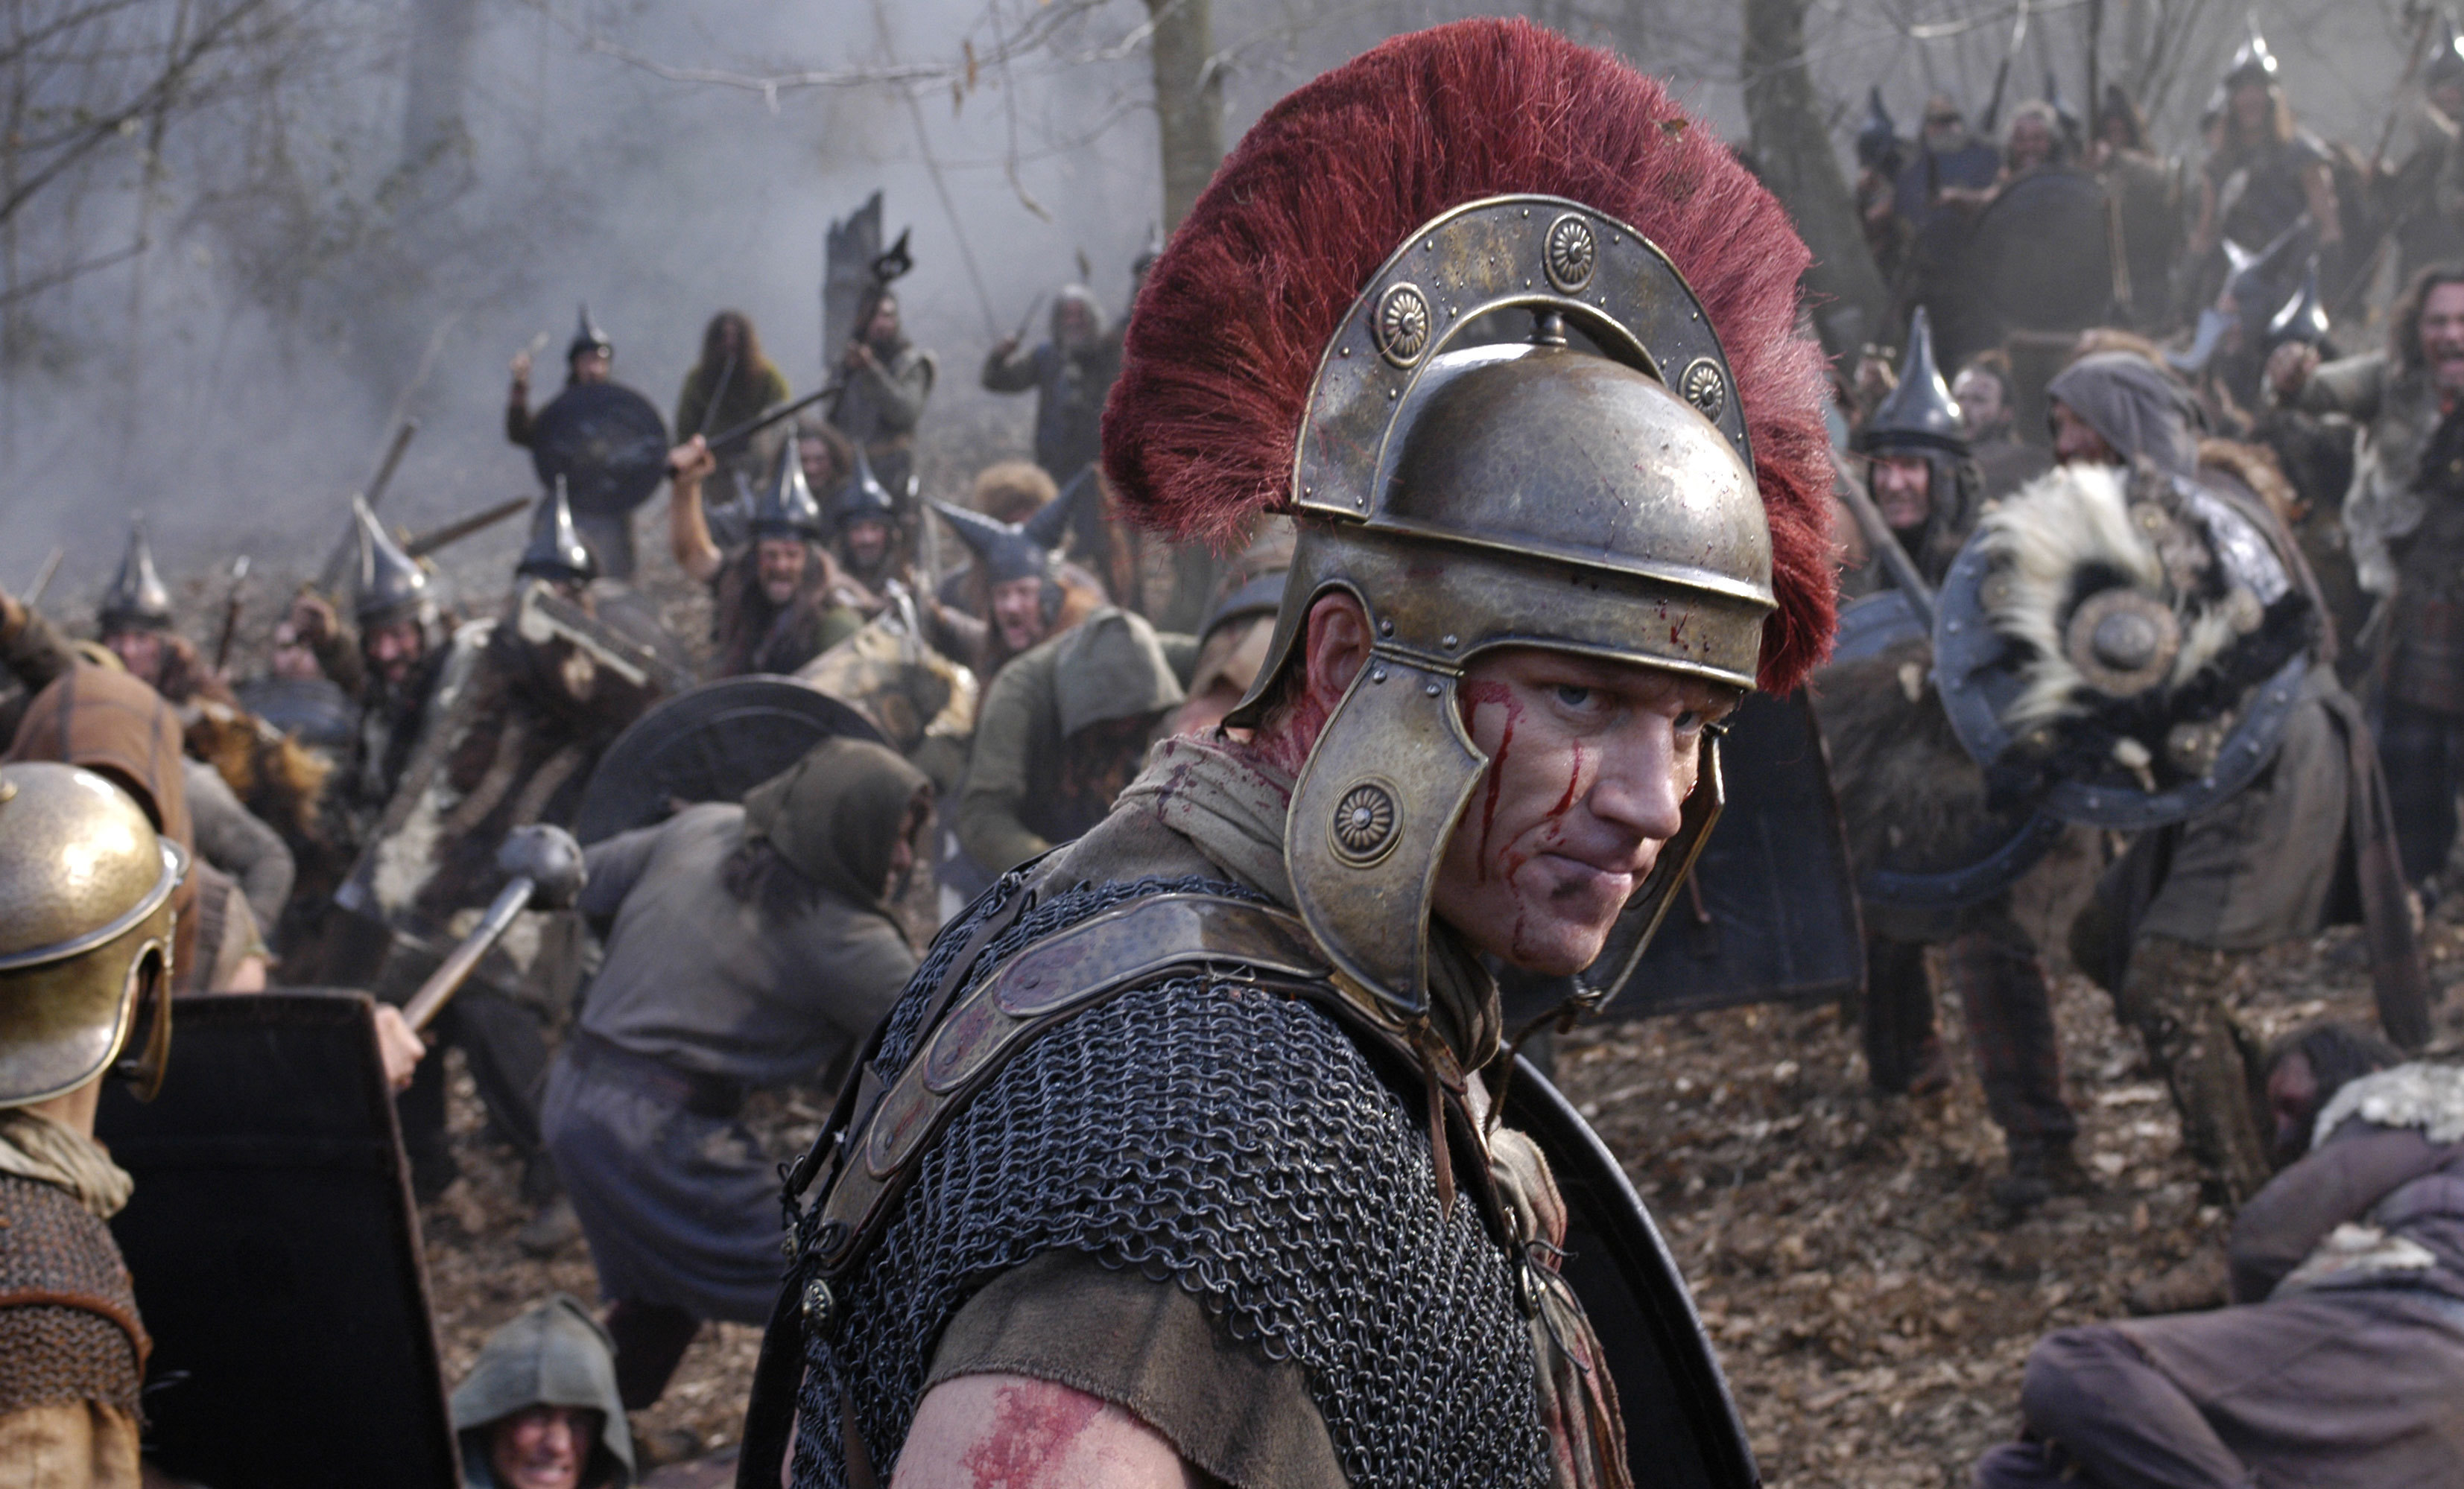 Armored Warrior Wallpaper Armor Movies Rome Warrior